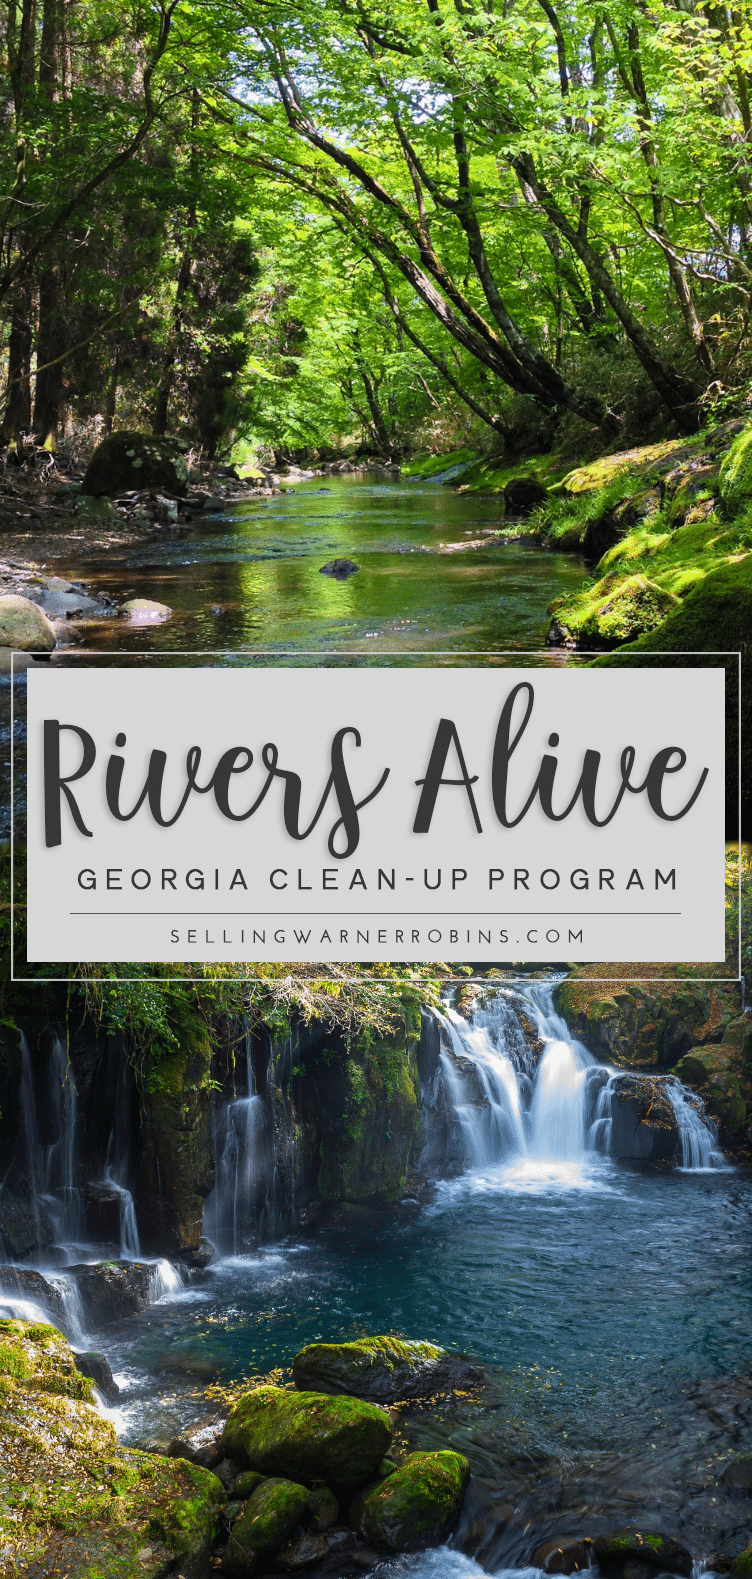 Georgia's River Alive Clean-Up Program